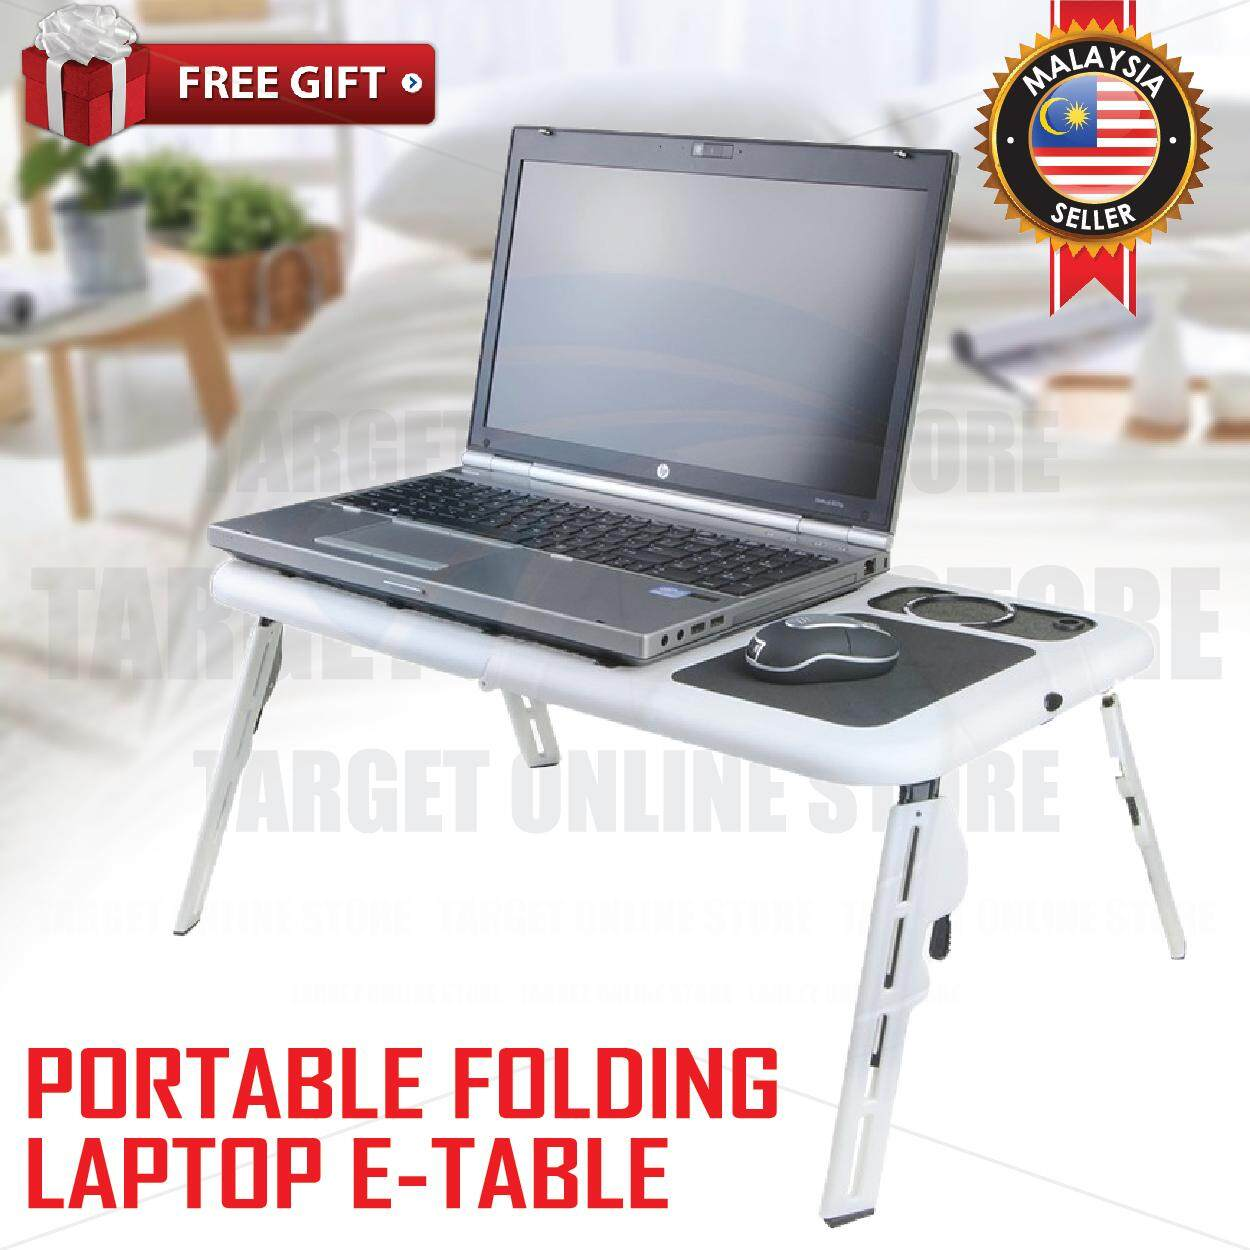 Portable Folding Adjustable E-Table Laptop Table Bed USB Cooling Fan Malaysia